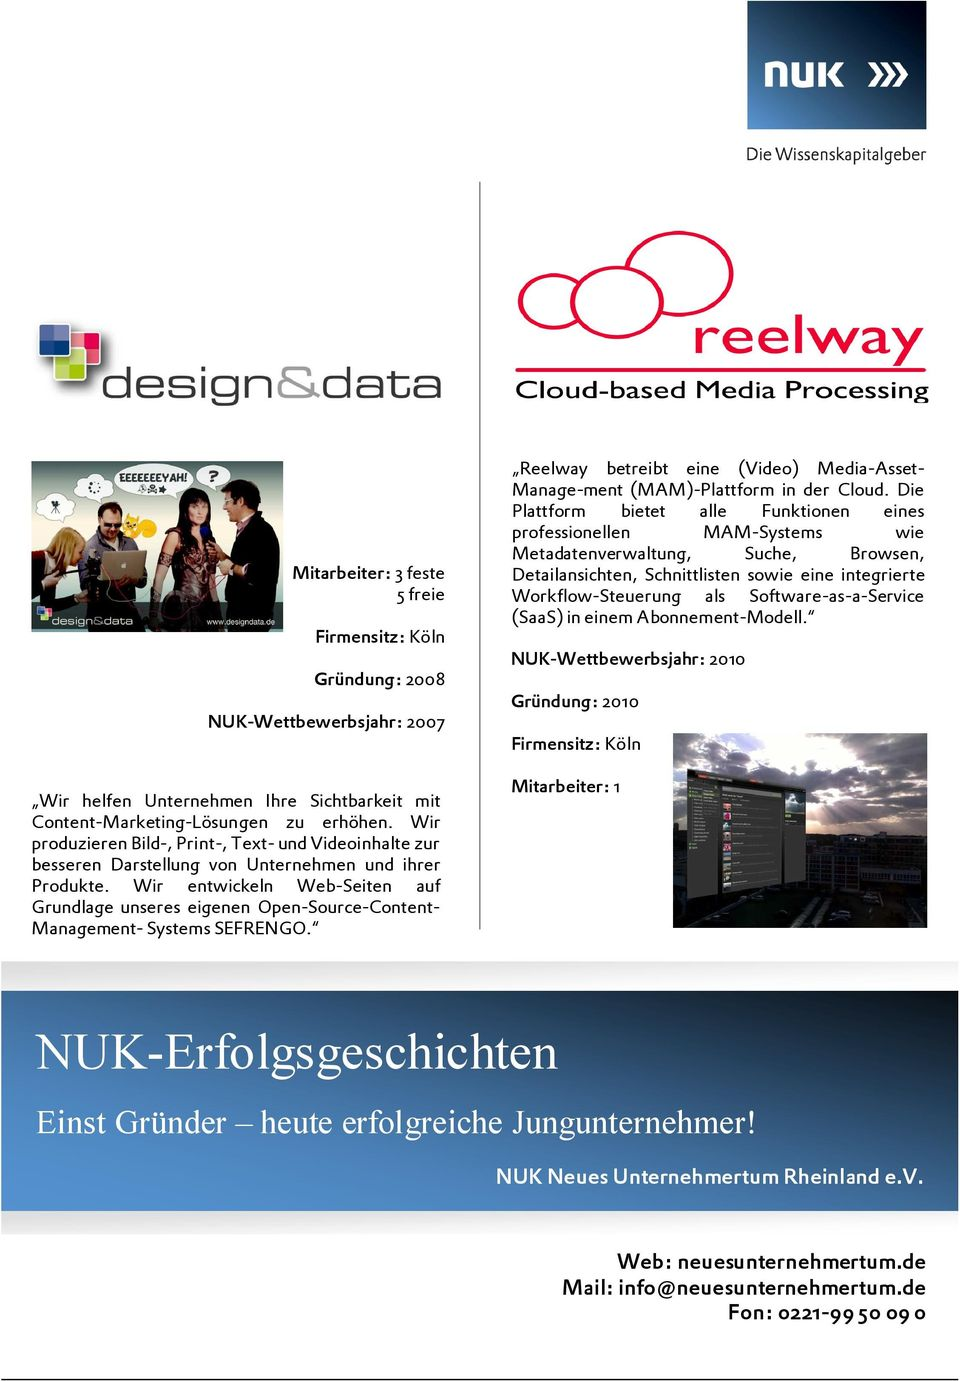 Wir entwickeln Web-Seiten auf Grundlage unseres eigenen Open-Source-Content- Management- Systems SEFRENGO. Reelway betreibt eine (Video) Media-Asset- Manage-ment (MAM)-Plattform in der Cloud.